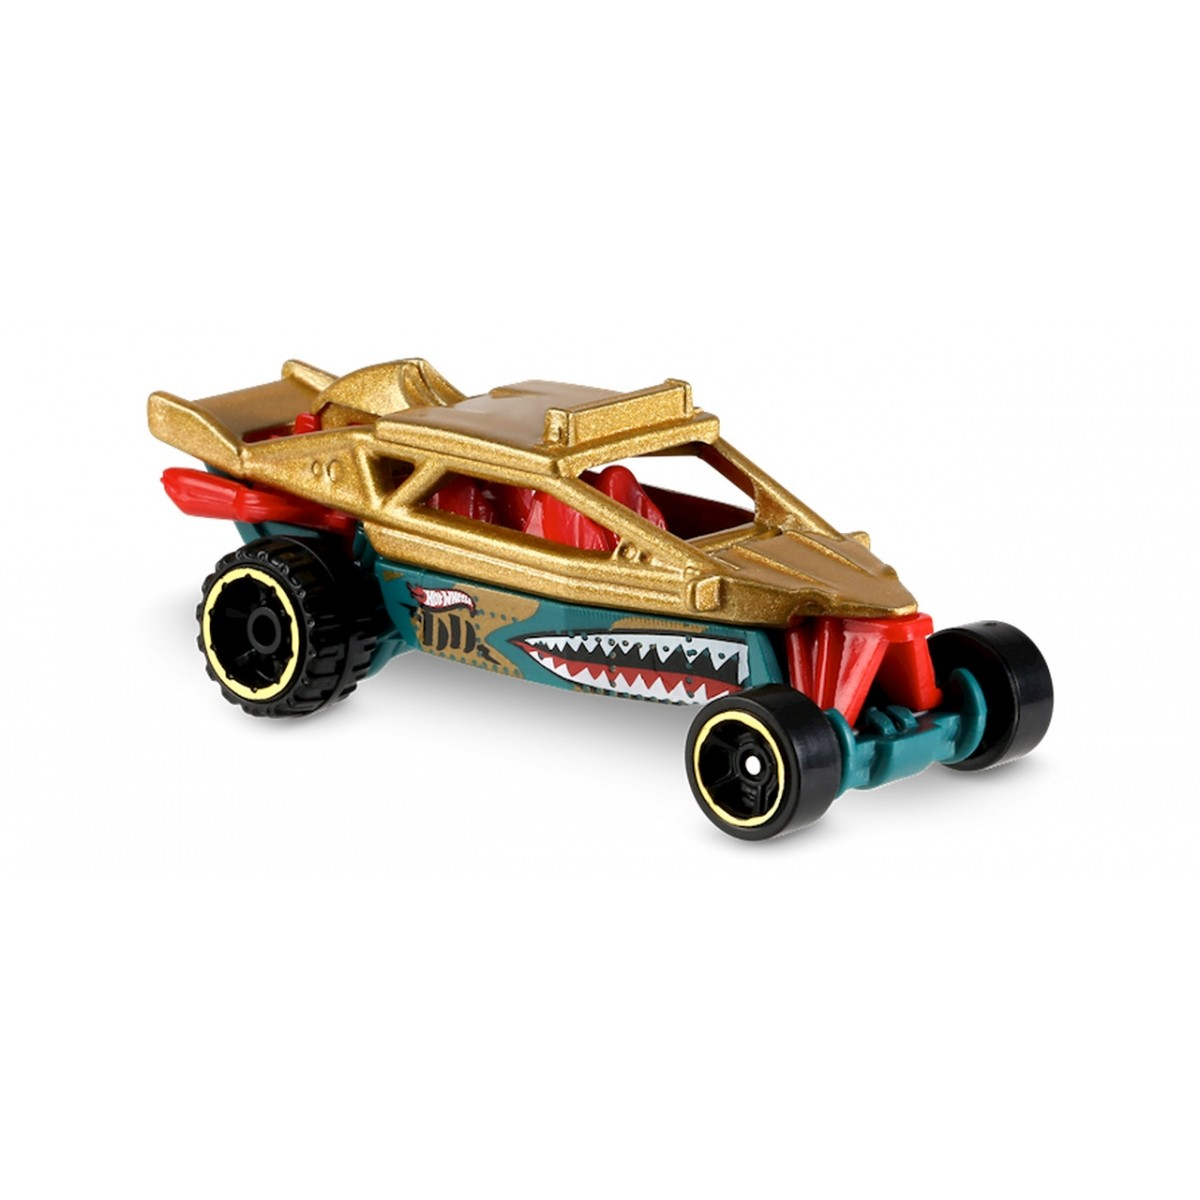 Carrinho Hot Wheels: Dune It Up Dourado e Verde